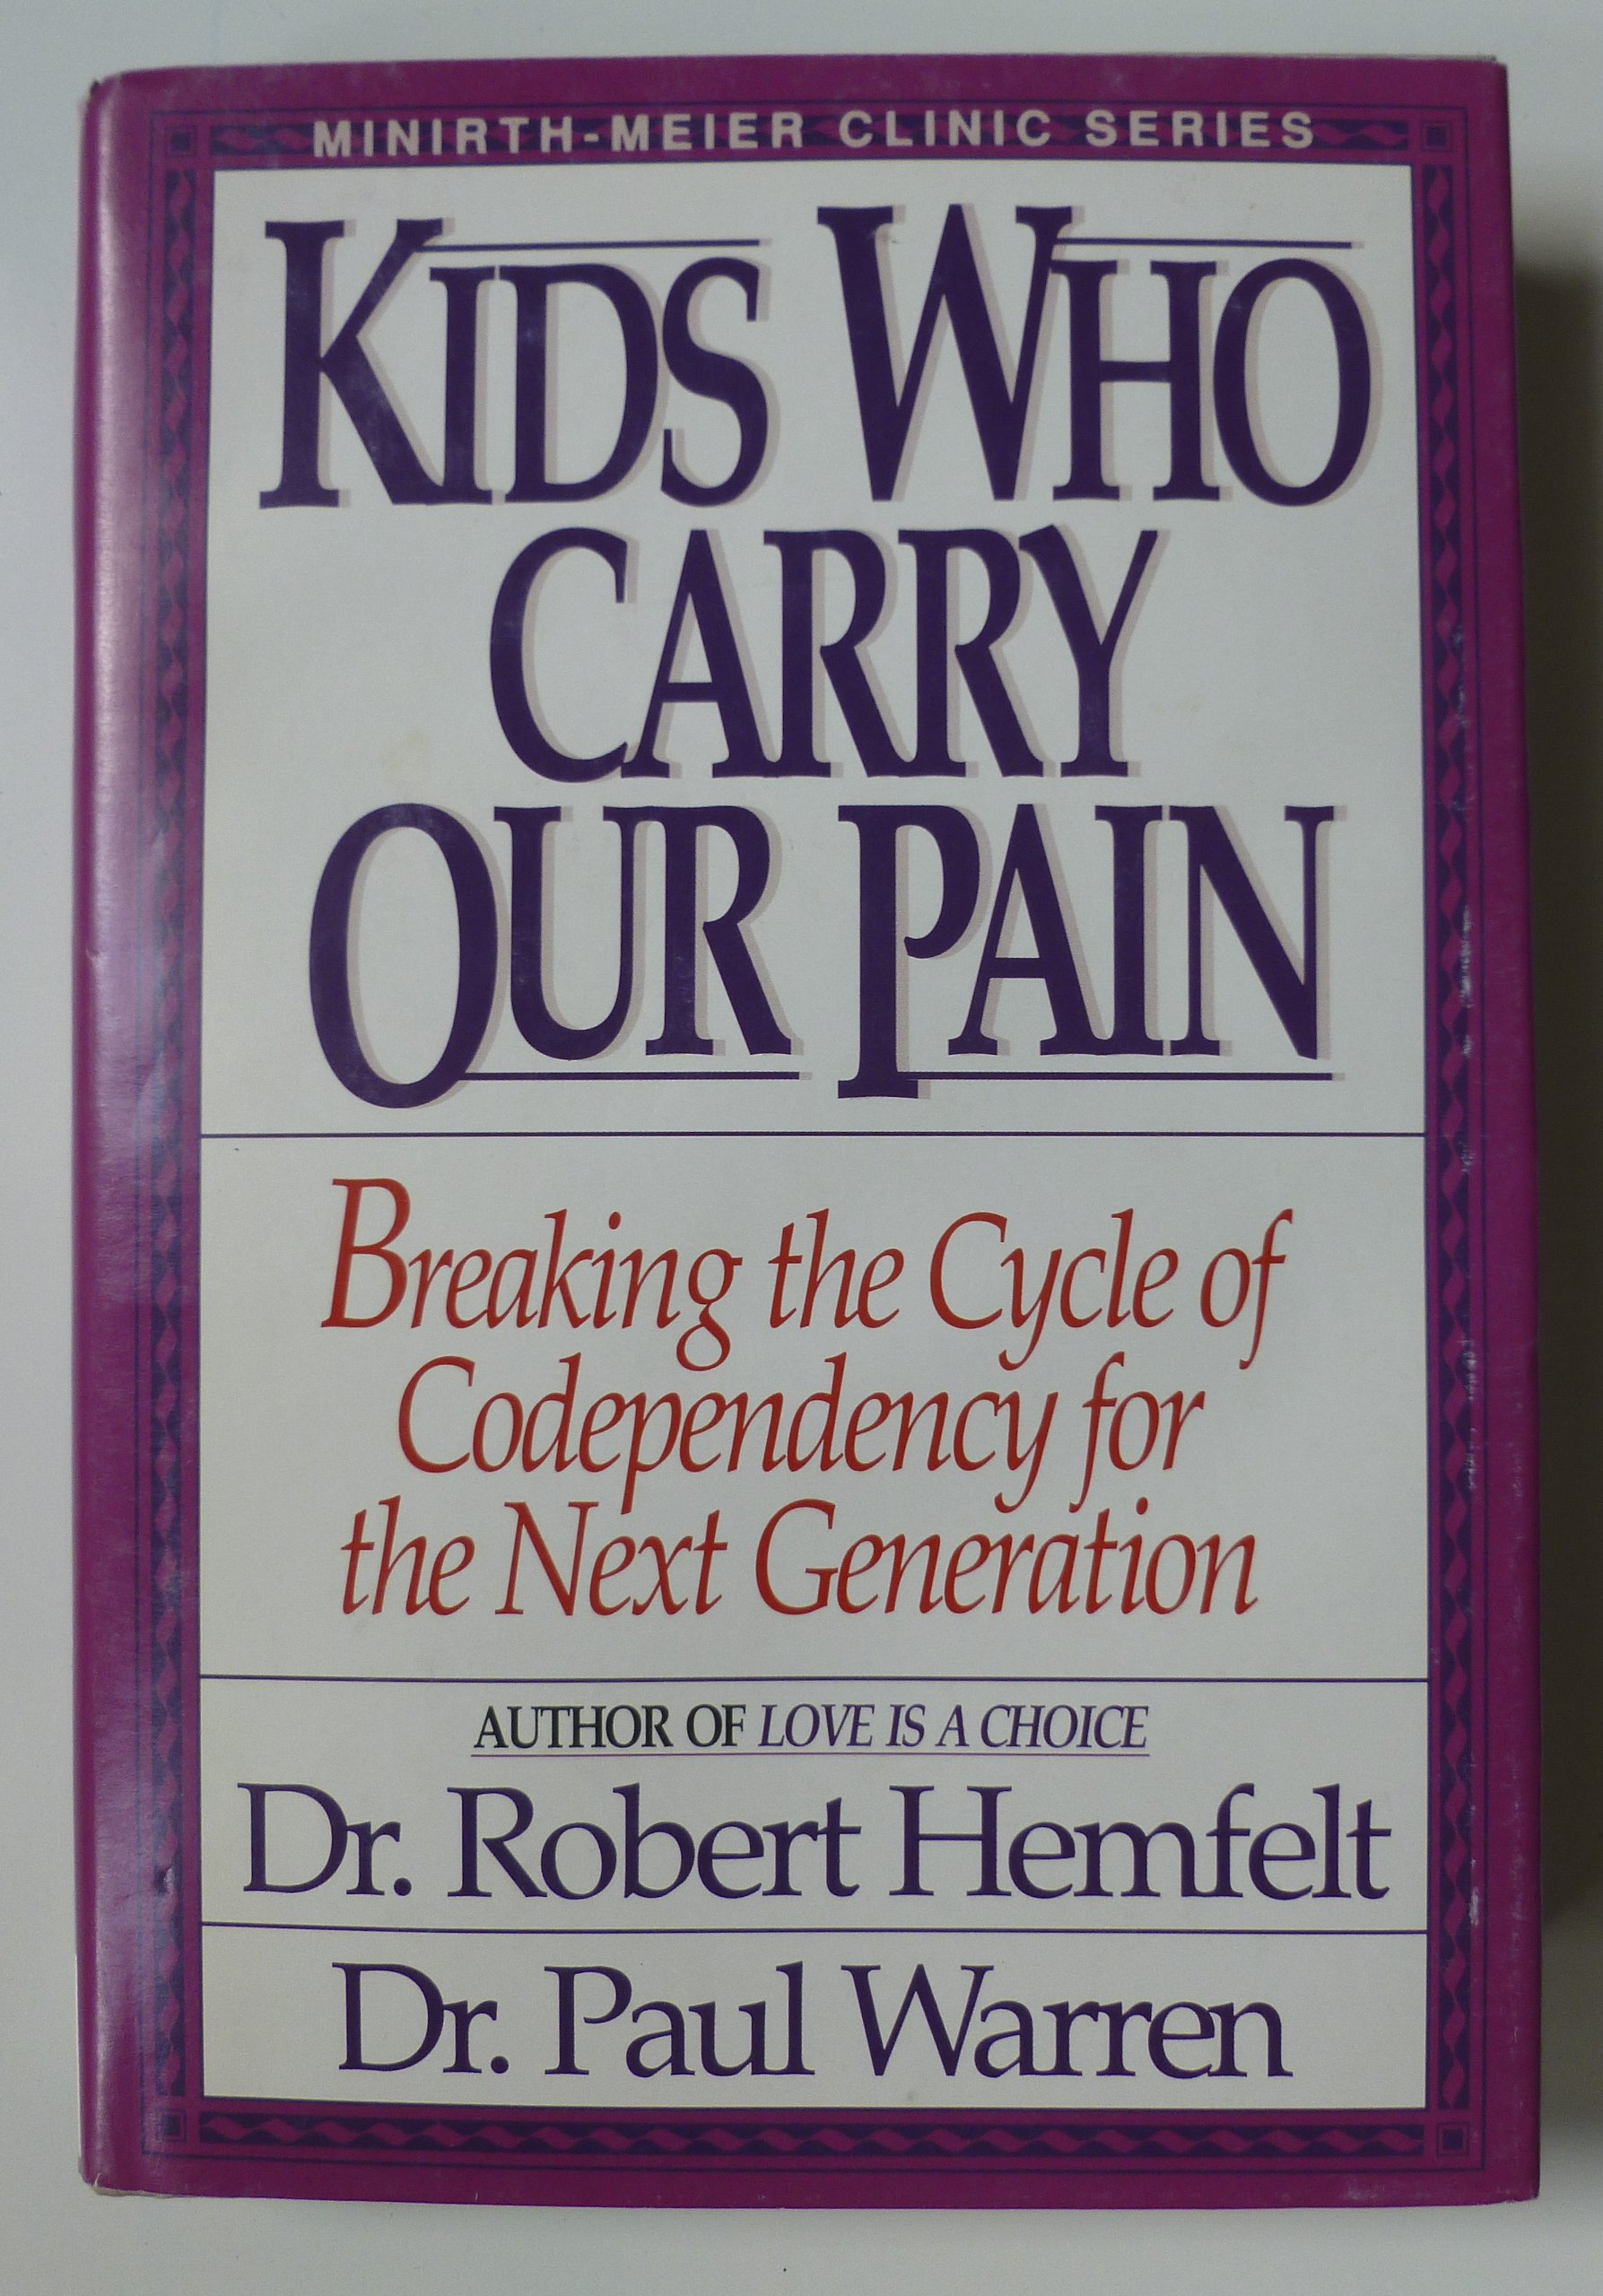 Kids Who Carry Our Pain: Breaking the Cycle of Codependency for the Next  Generation ( Minirth-Meier Clinic Series): Robert Hemfelt, Paul Warren: ...